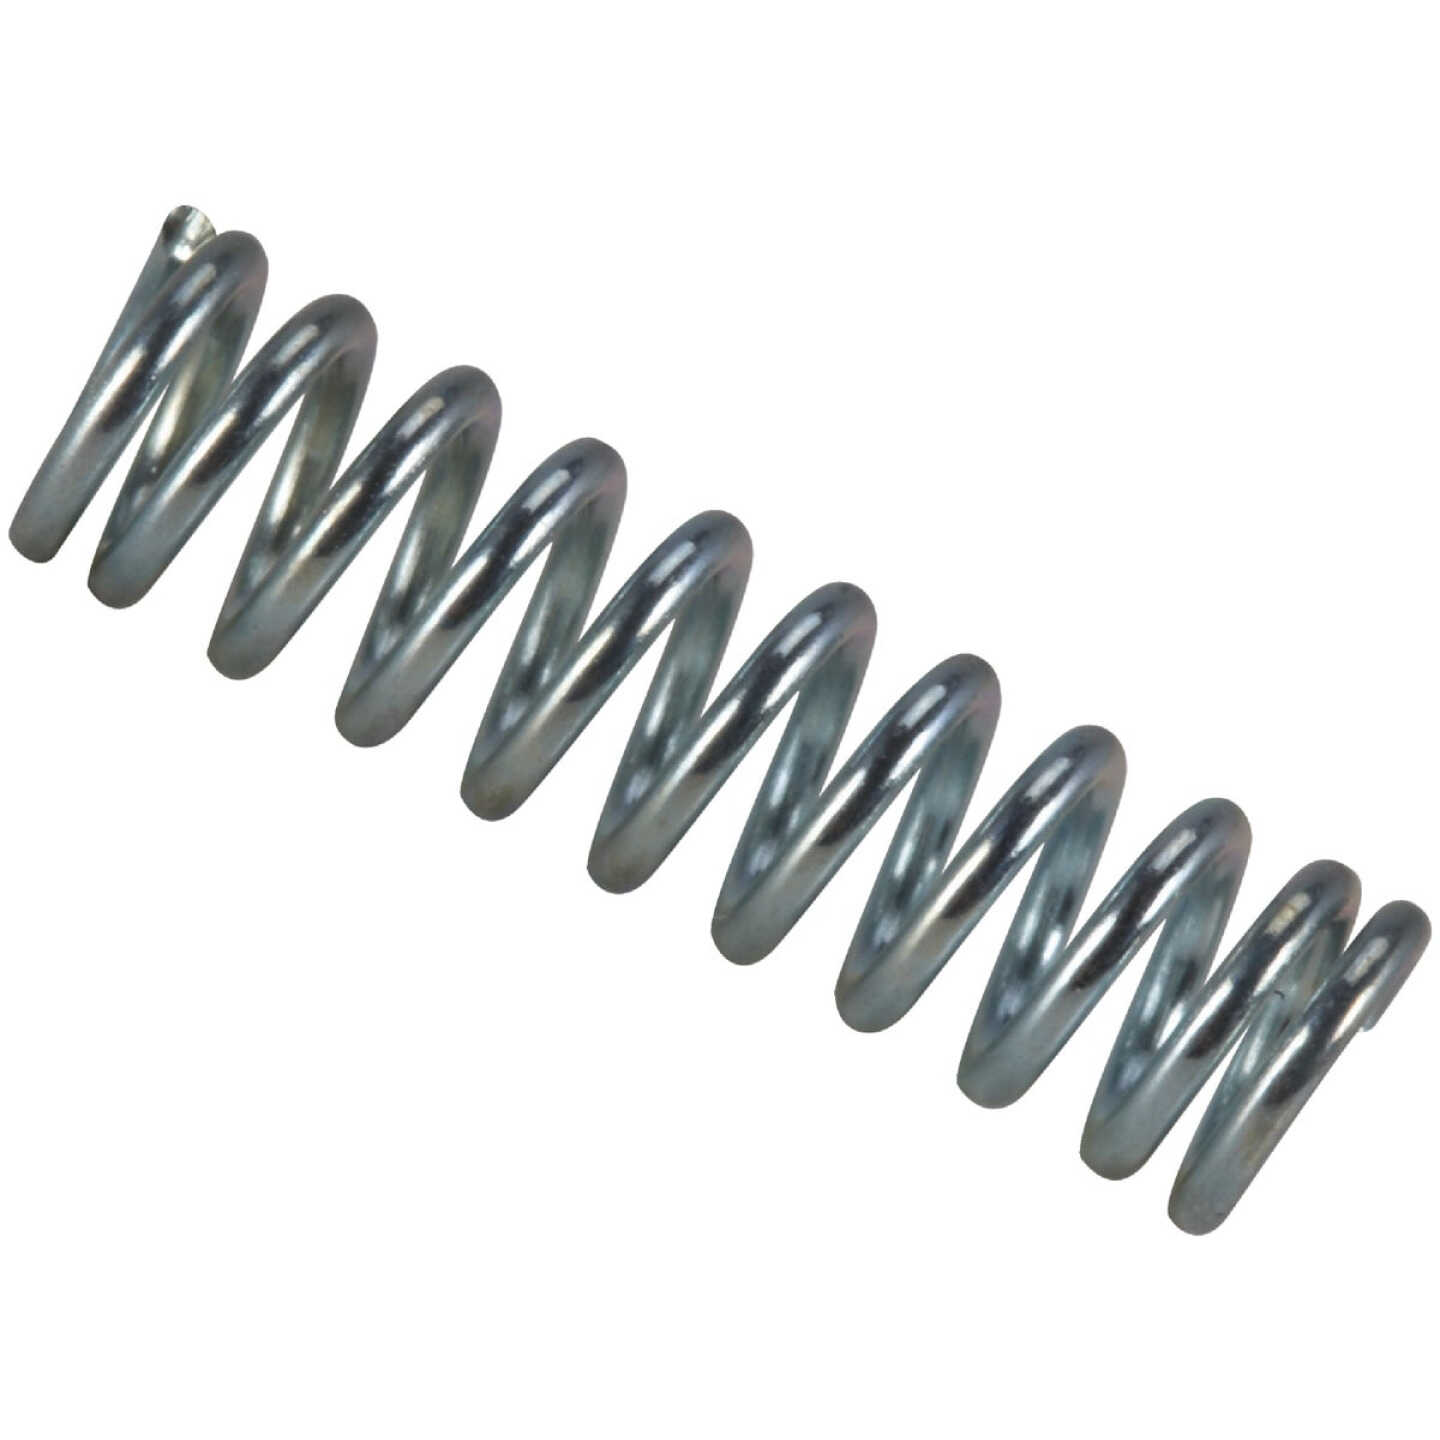 Century Spring 1-3/4 In. x 3/8 In. Compression Spring (4 Count) Image 1